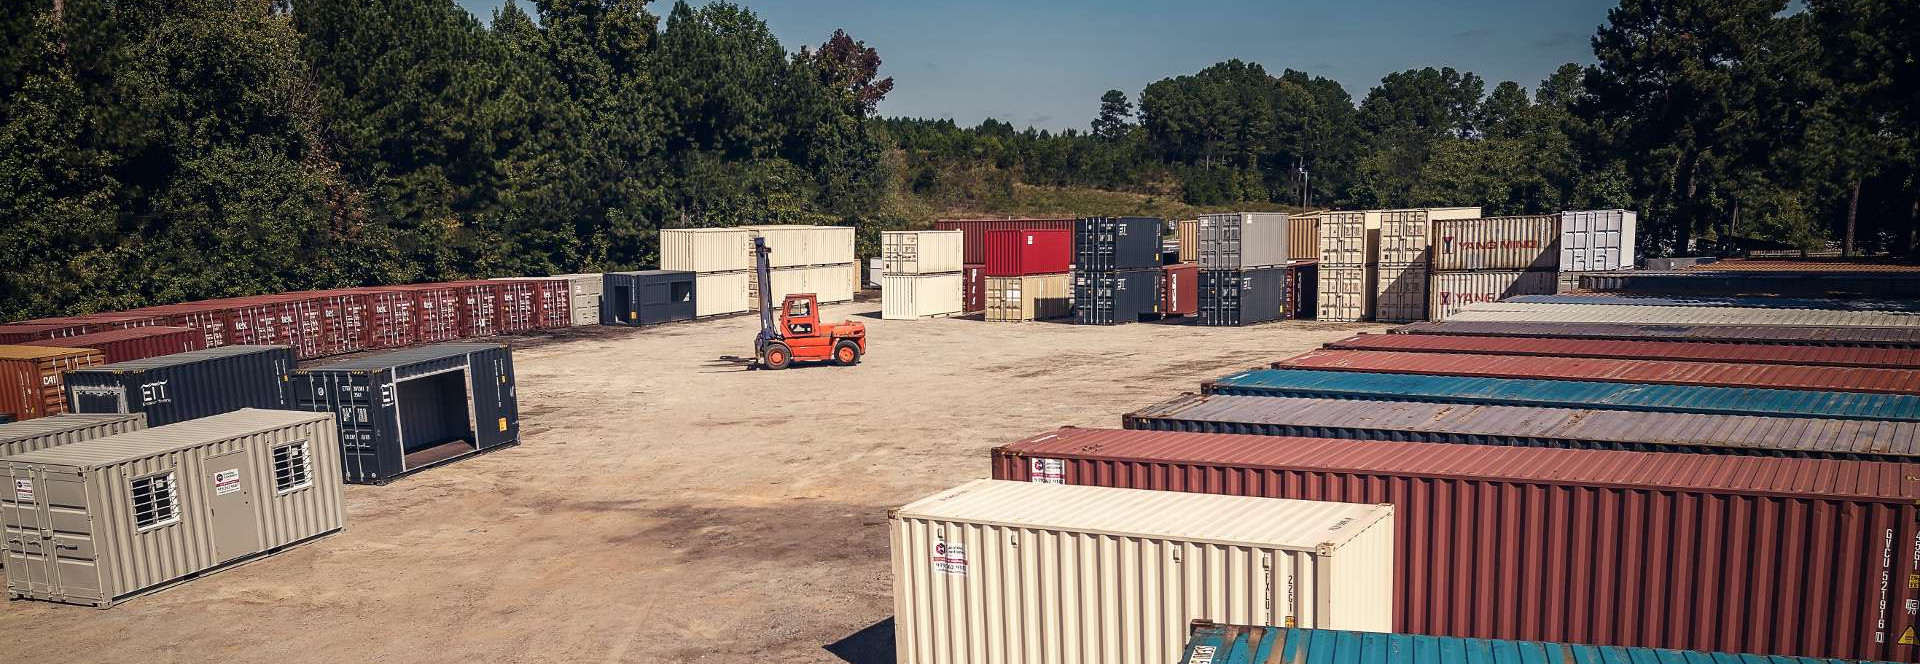 raleigh storage container lot